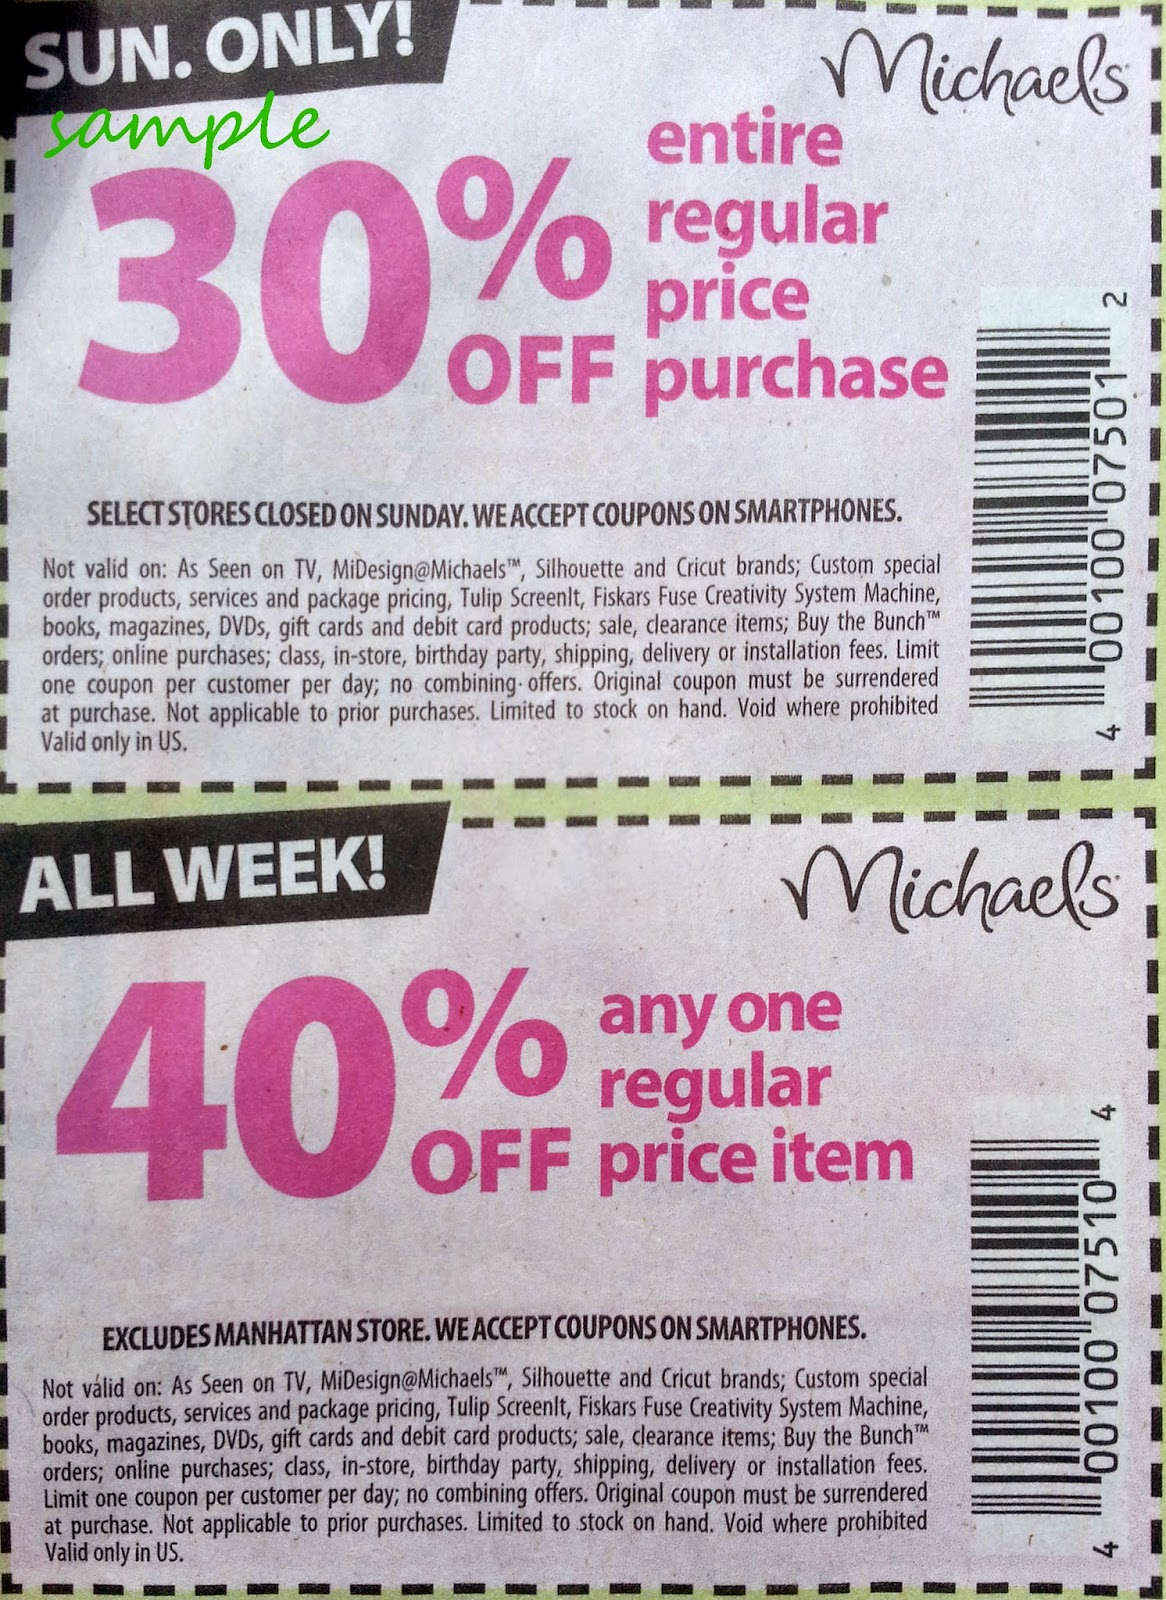 Discounts coupons